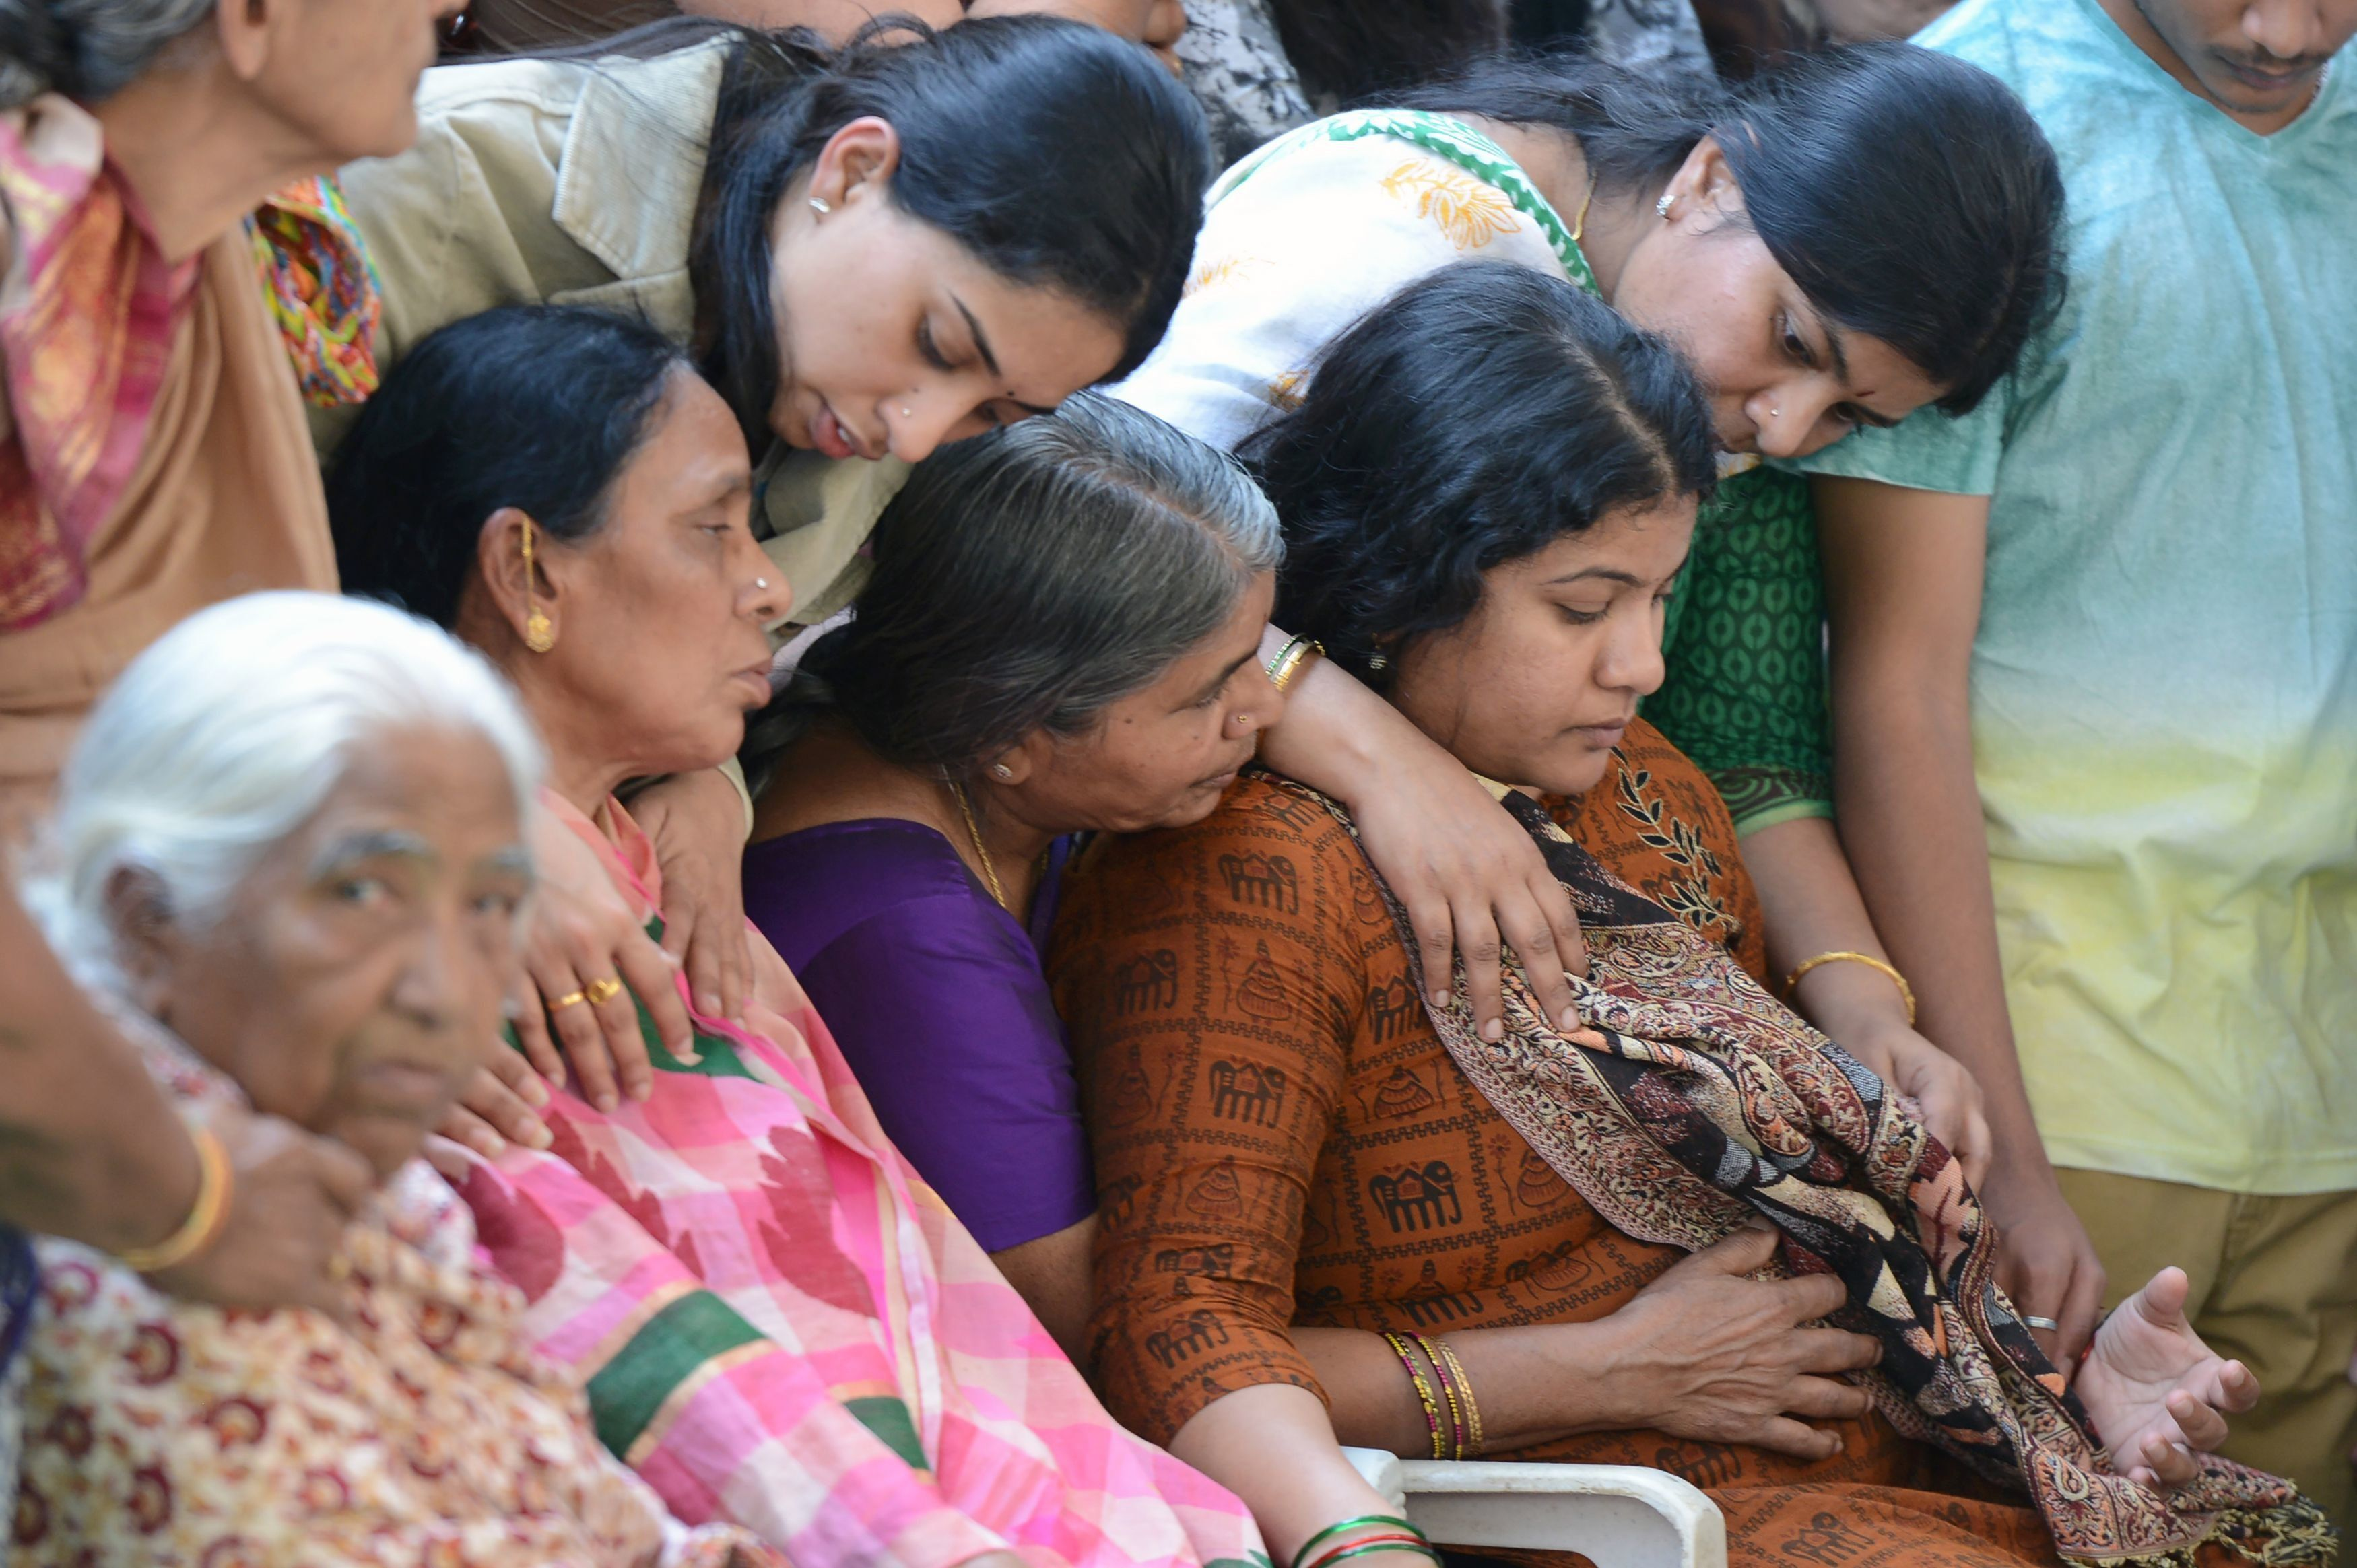 Sunayana Dumala (R), wife of killed Indian engineer Srinivas Kuchibhotla, who was shot dead in the US state of Kansas, is con